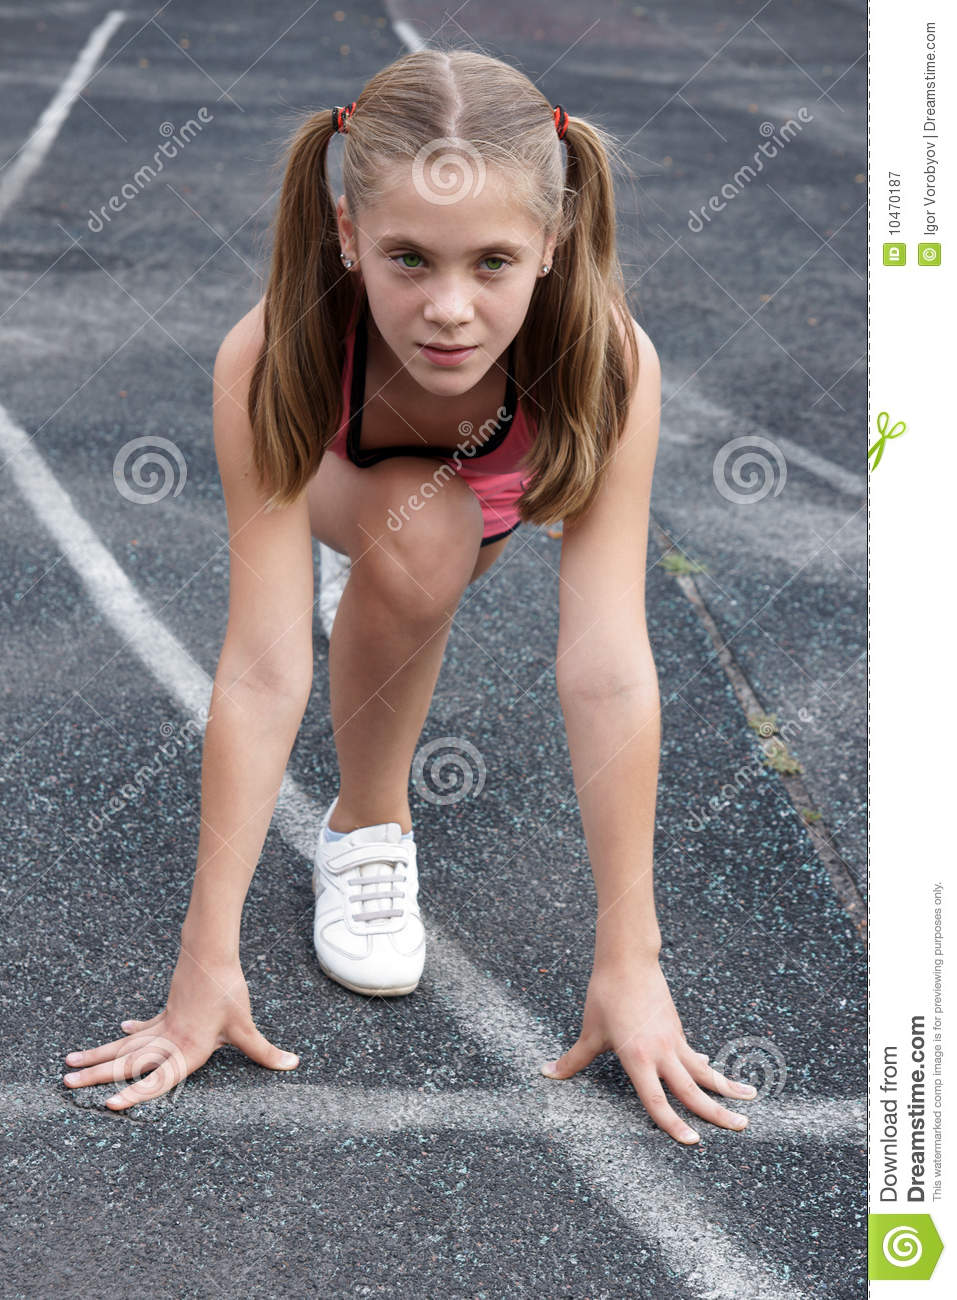 Preteen girl starting to run on track u0424u043eu0442u043e u0441u043e u0441u0442u043eu043au0430 - 5488158.